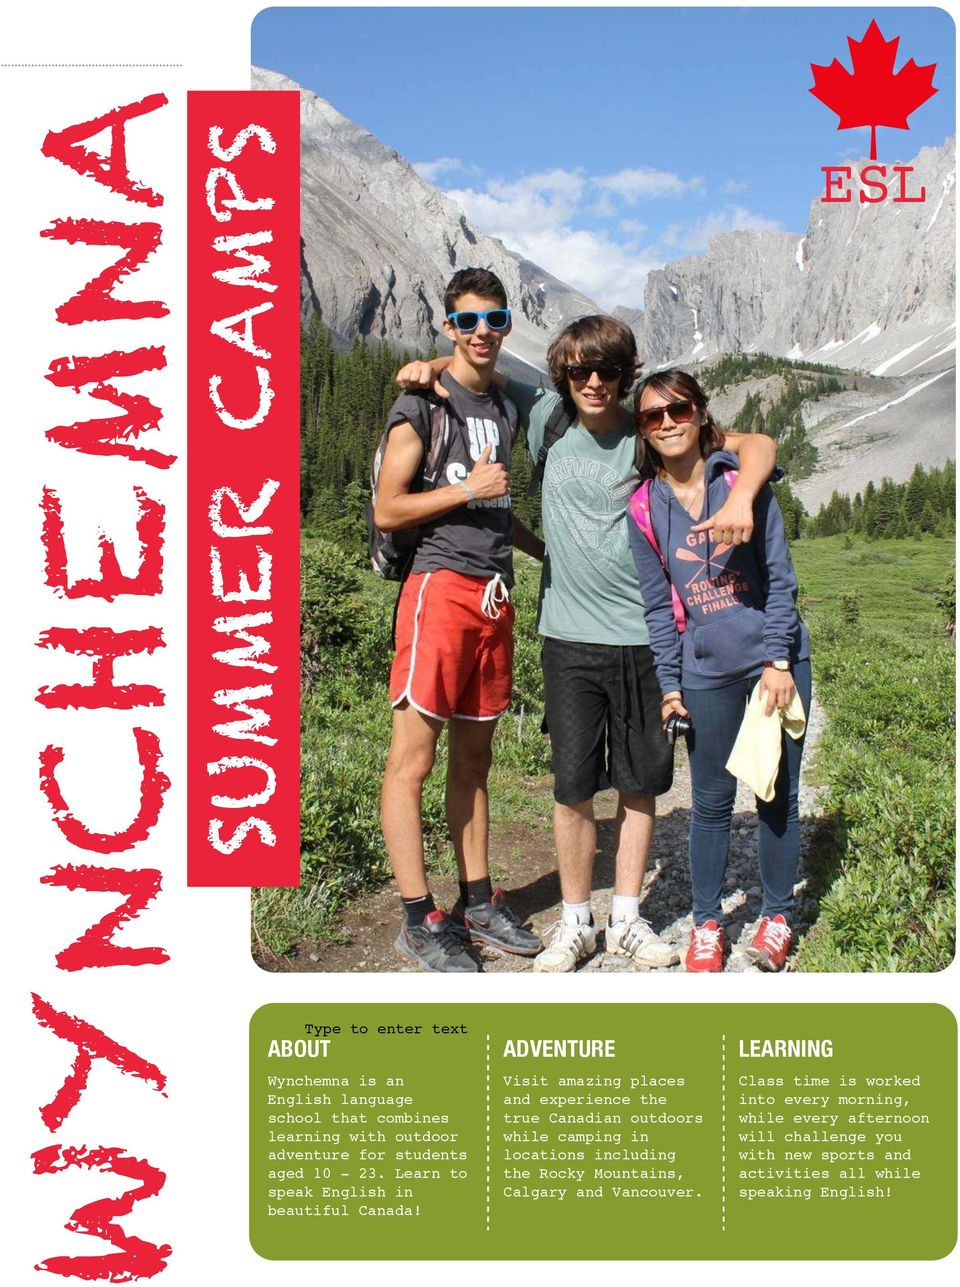 [1] ADVENTURE Visit amazing places and experience the true Canadian outdoors while camping in locations including the Rocky